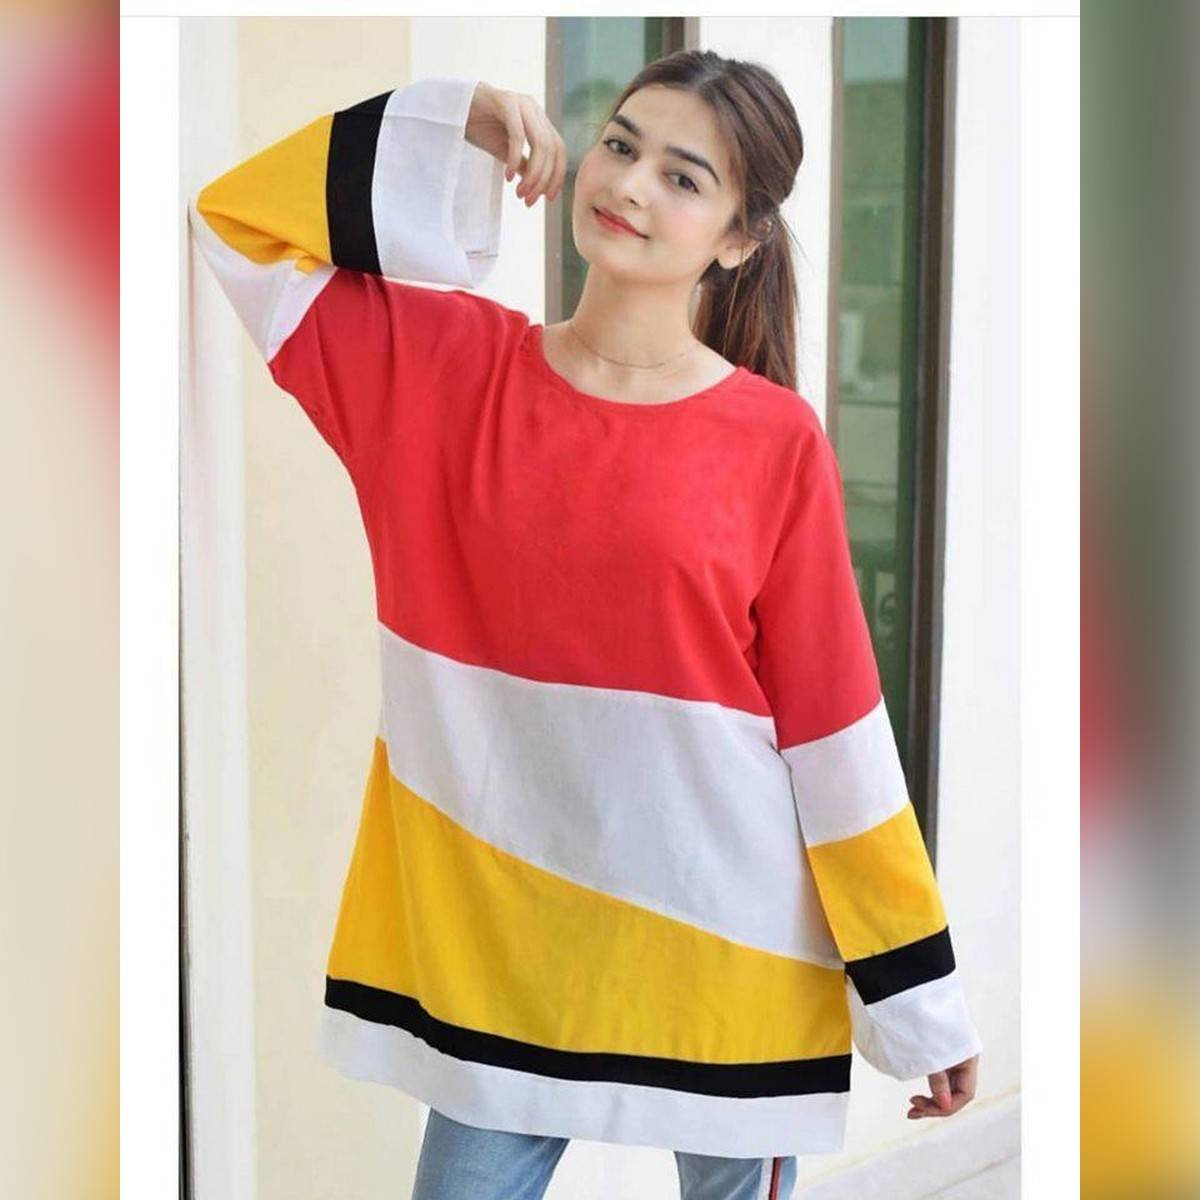 Meeza Fashion Store Summer Collection Fashionable Multi Panel Top For Women